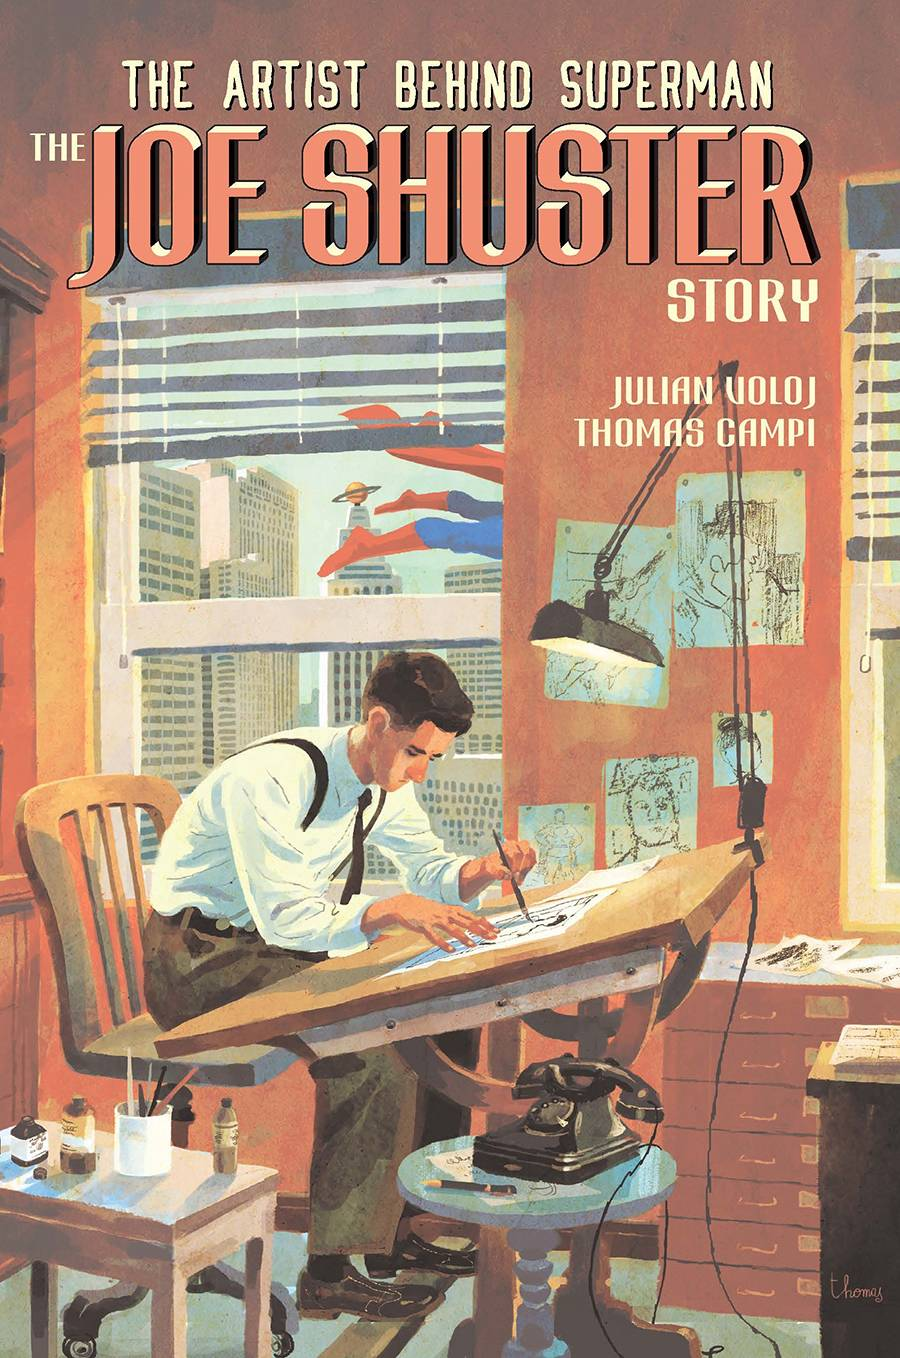 TRUTH JUSTICE AMERICAN WAY JOE SCHUSTER STORY HC.jpg